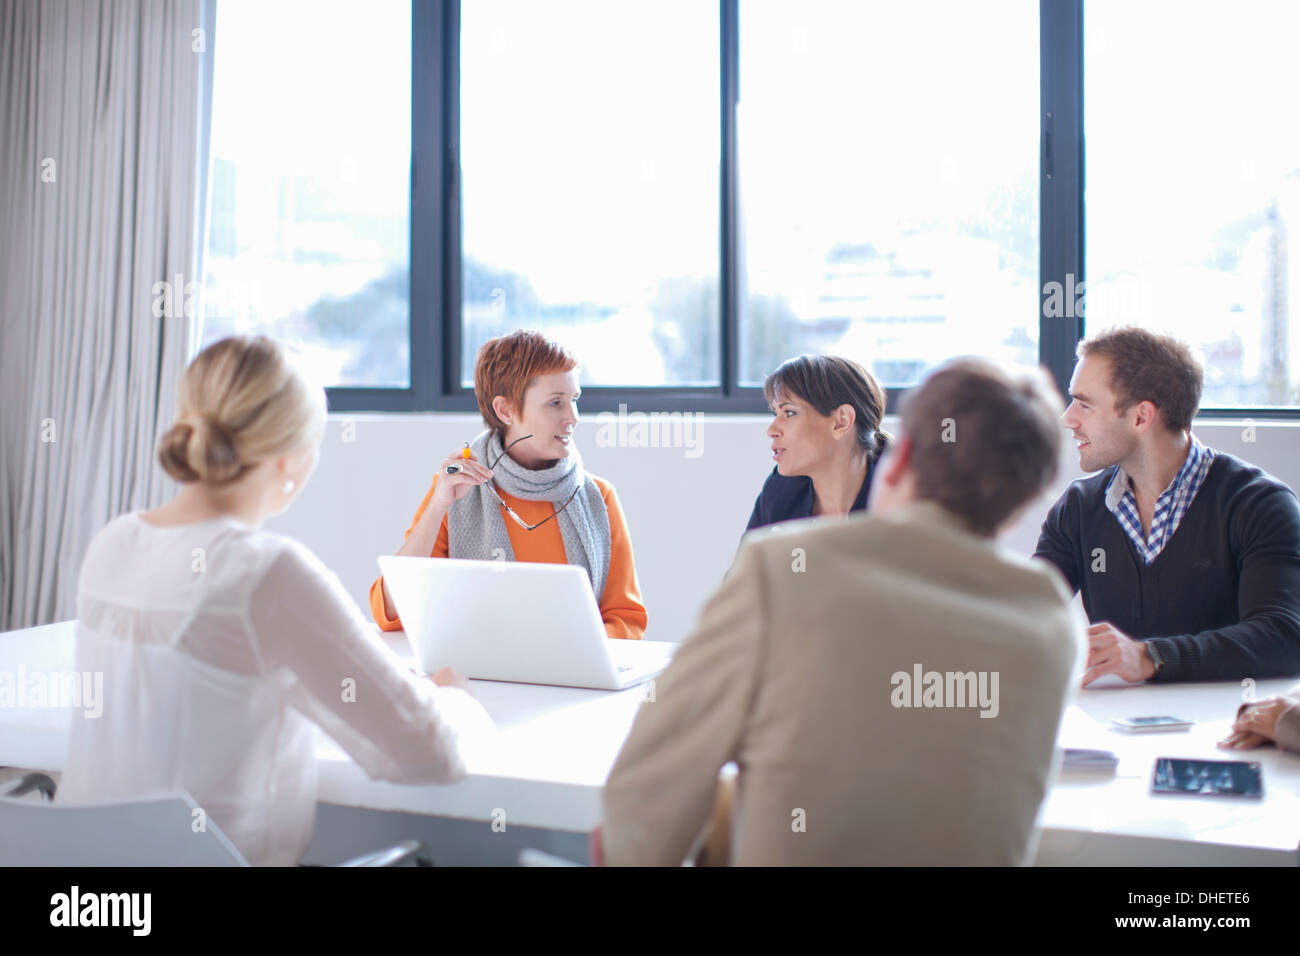 Businesspeople meeting around conference table - Stock Image